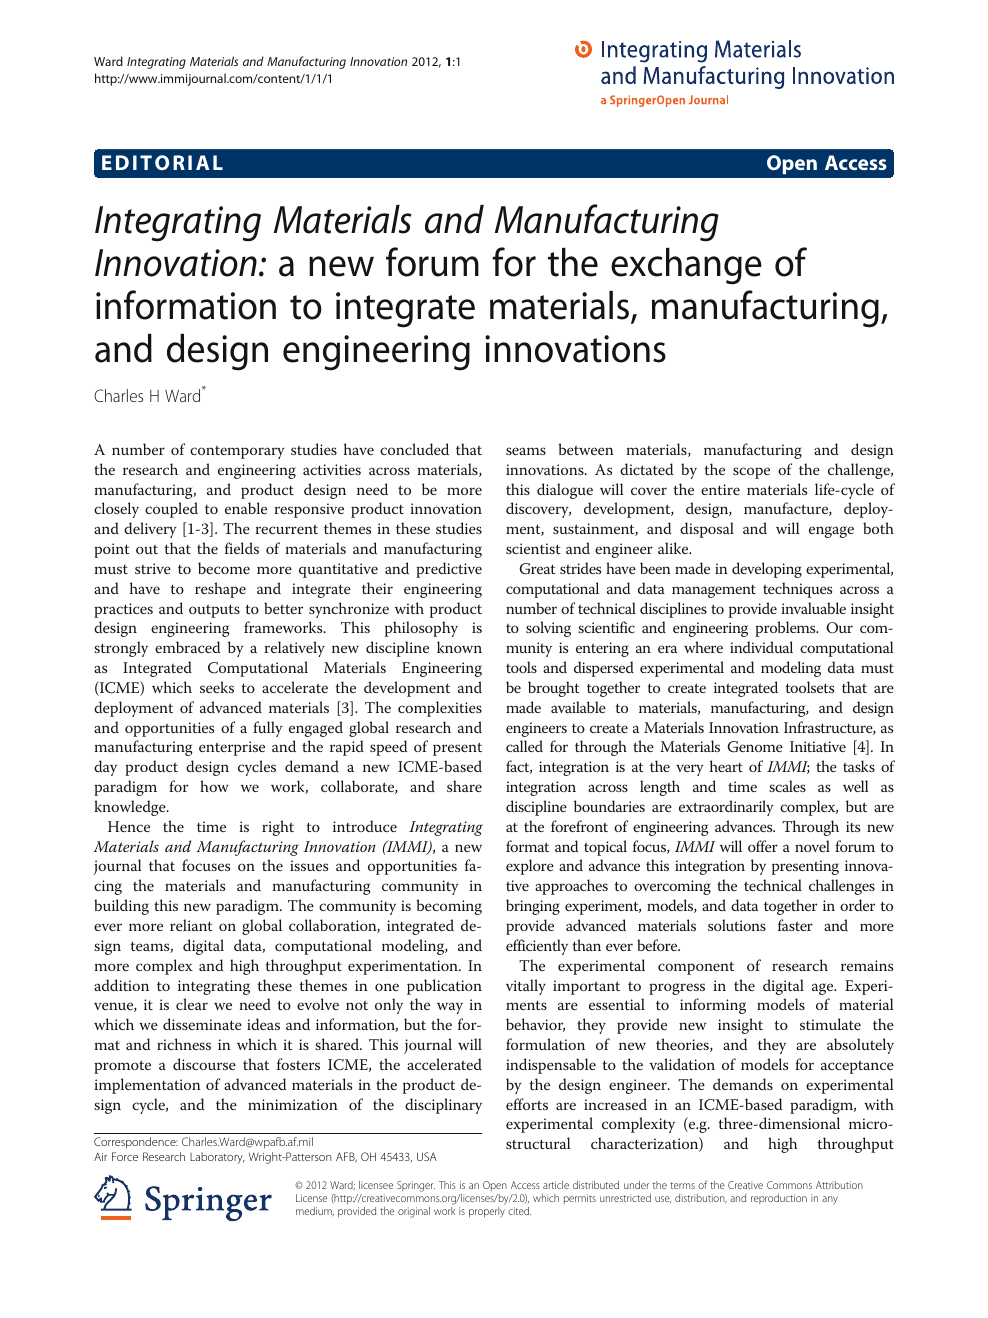 Integrating Materials and Manufacturing Innovation: a new